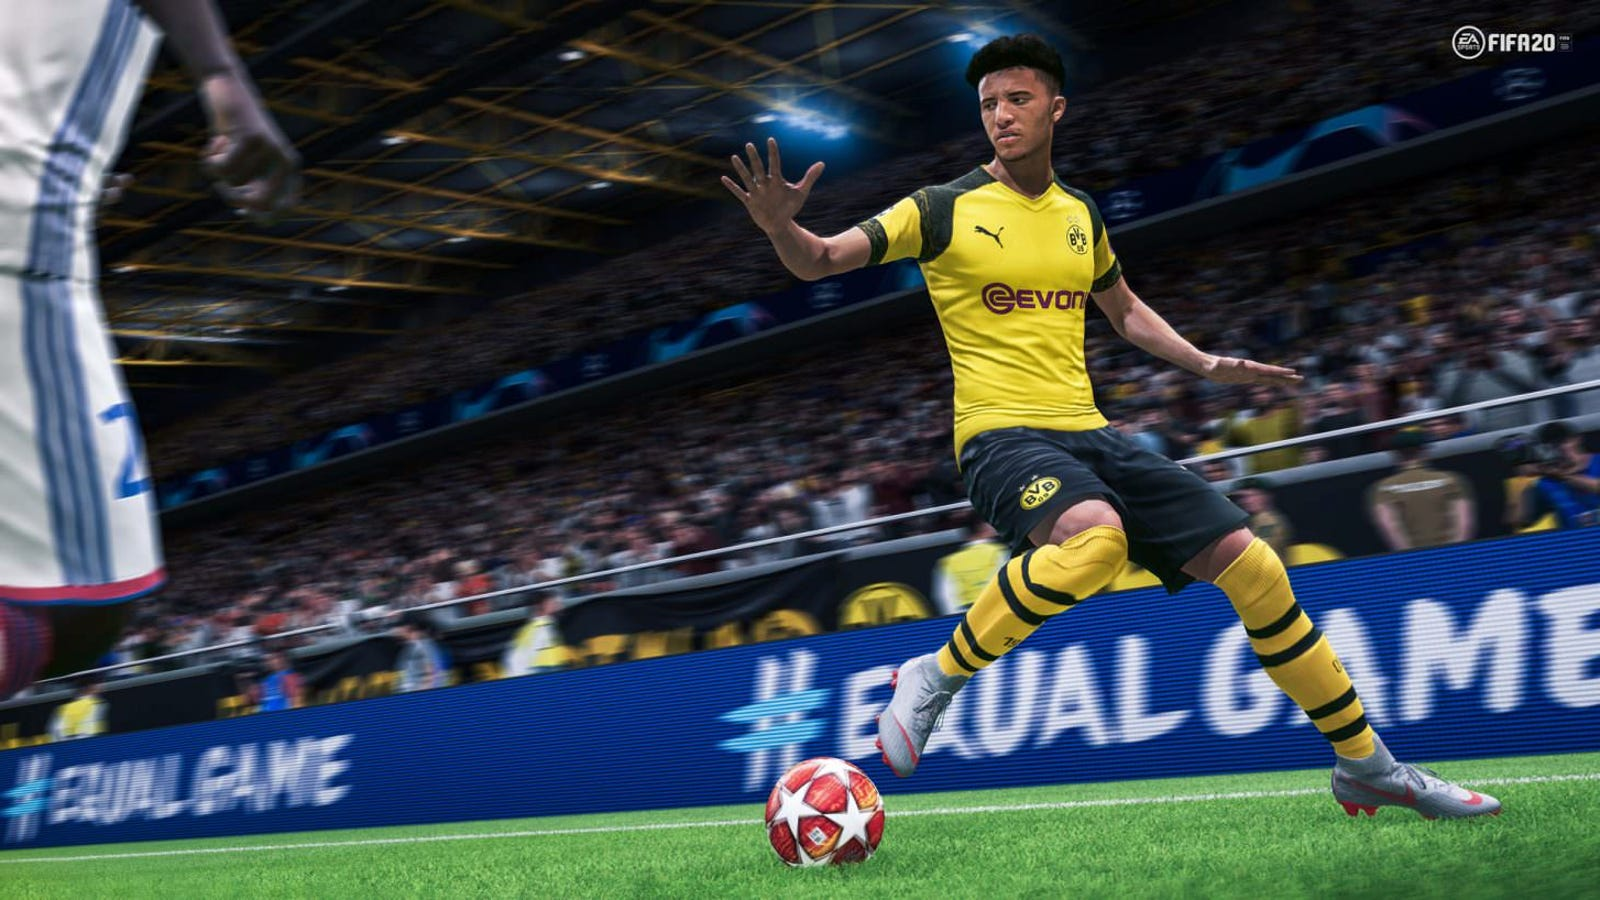 The Week In Games: Are You Ready For Some Soccer?